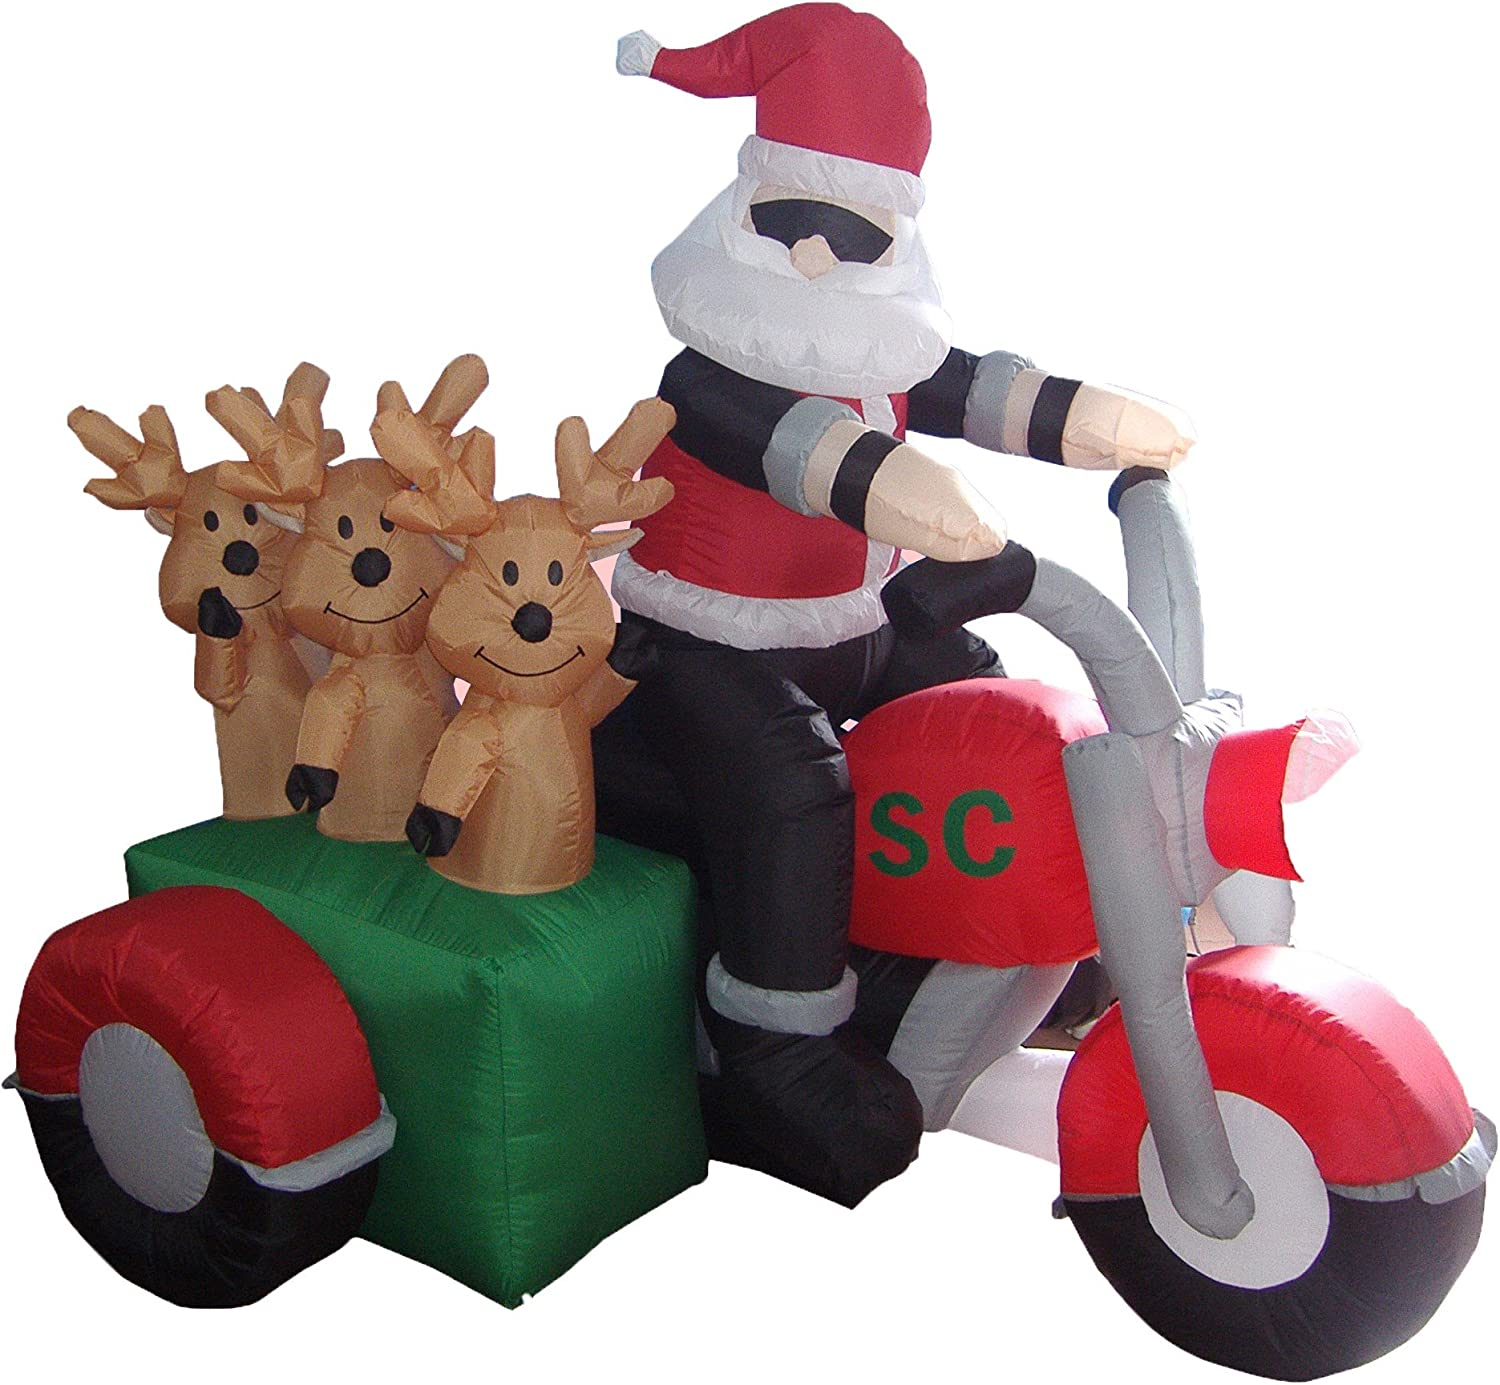 BZB Goods 5 Foot Tall Christmas Inflatable Santa Claus and Three Reindeer on Motorcycle Outdoor Indoor Decoration